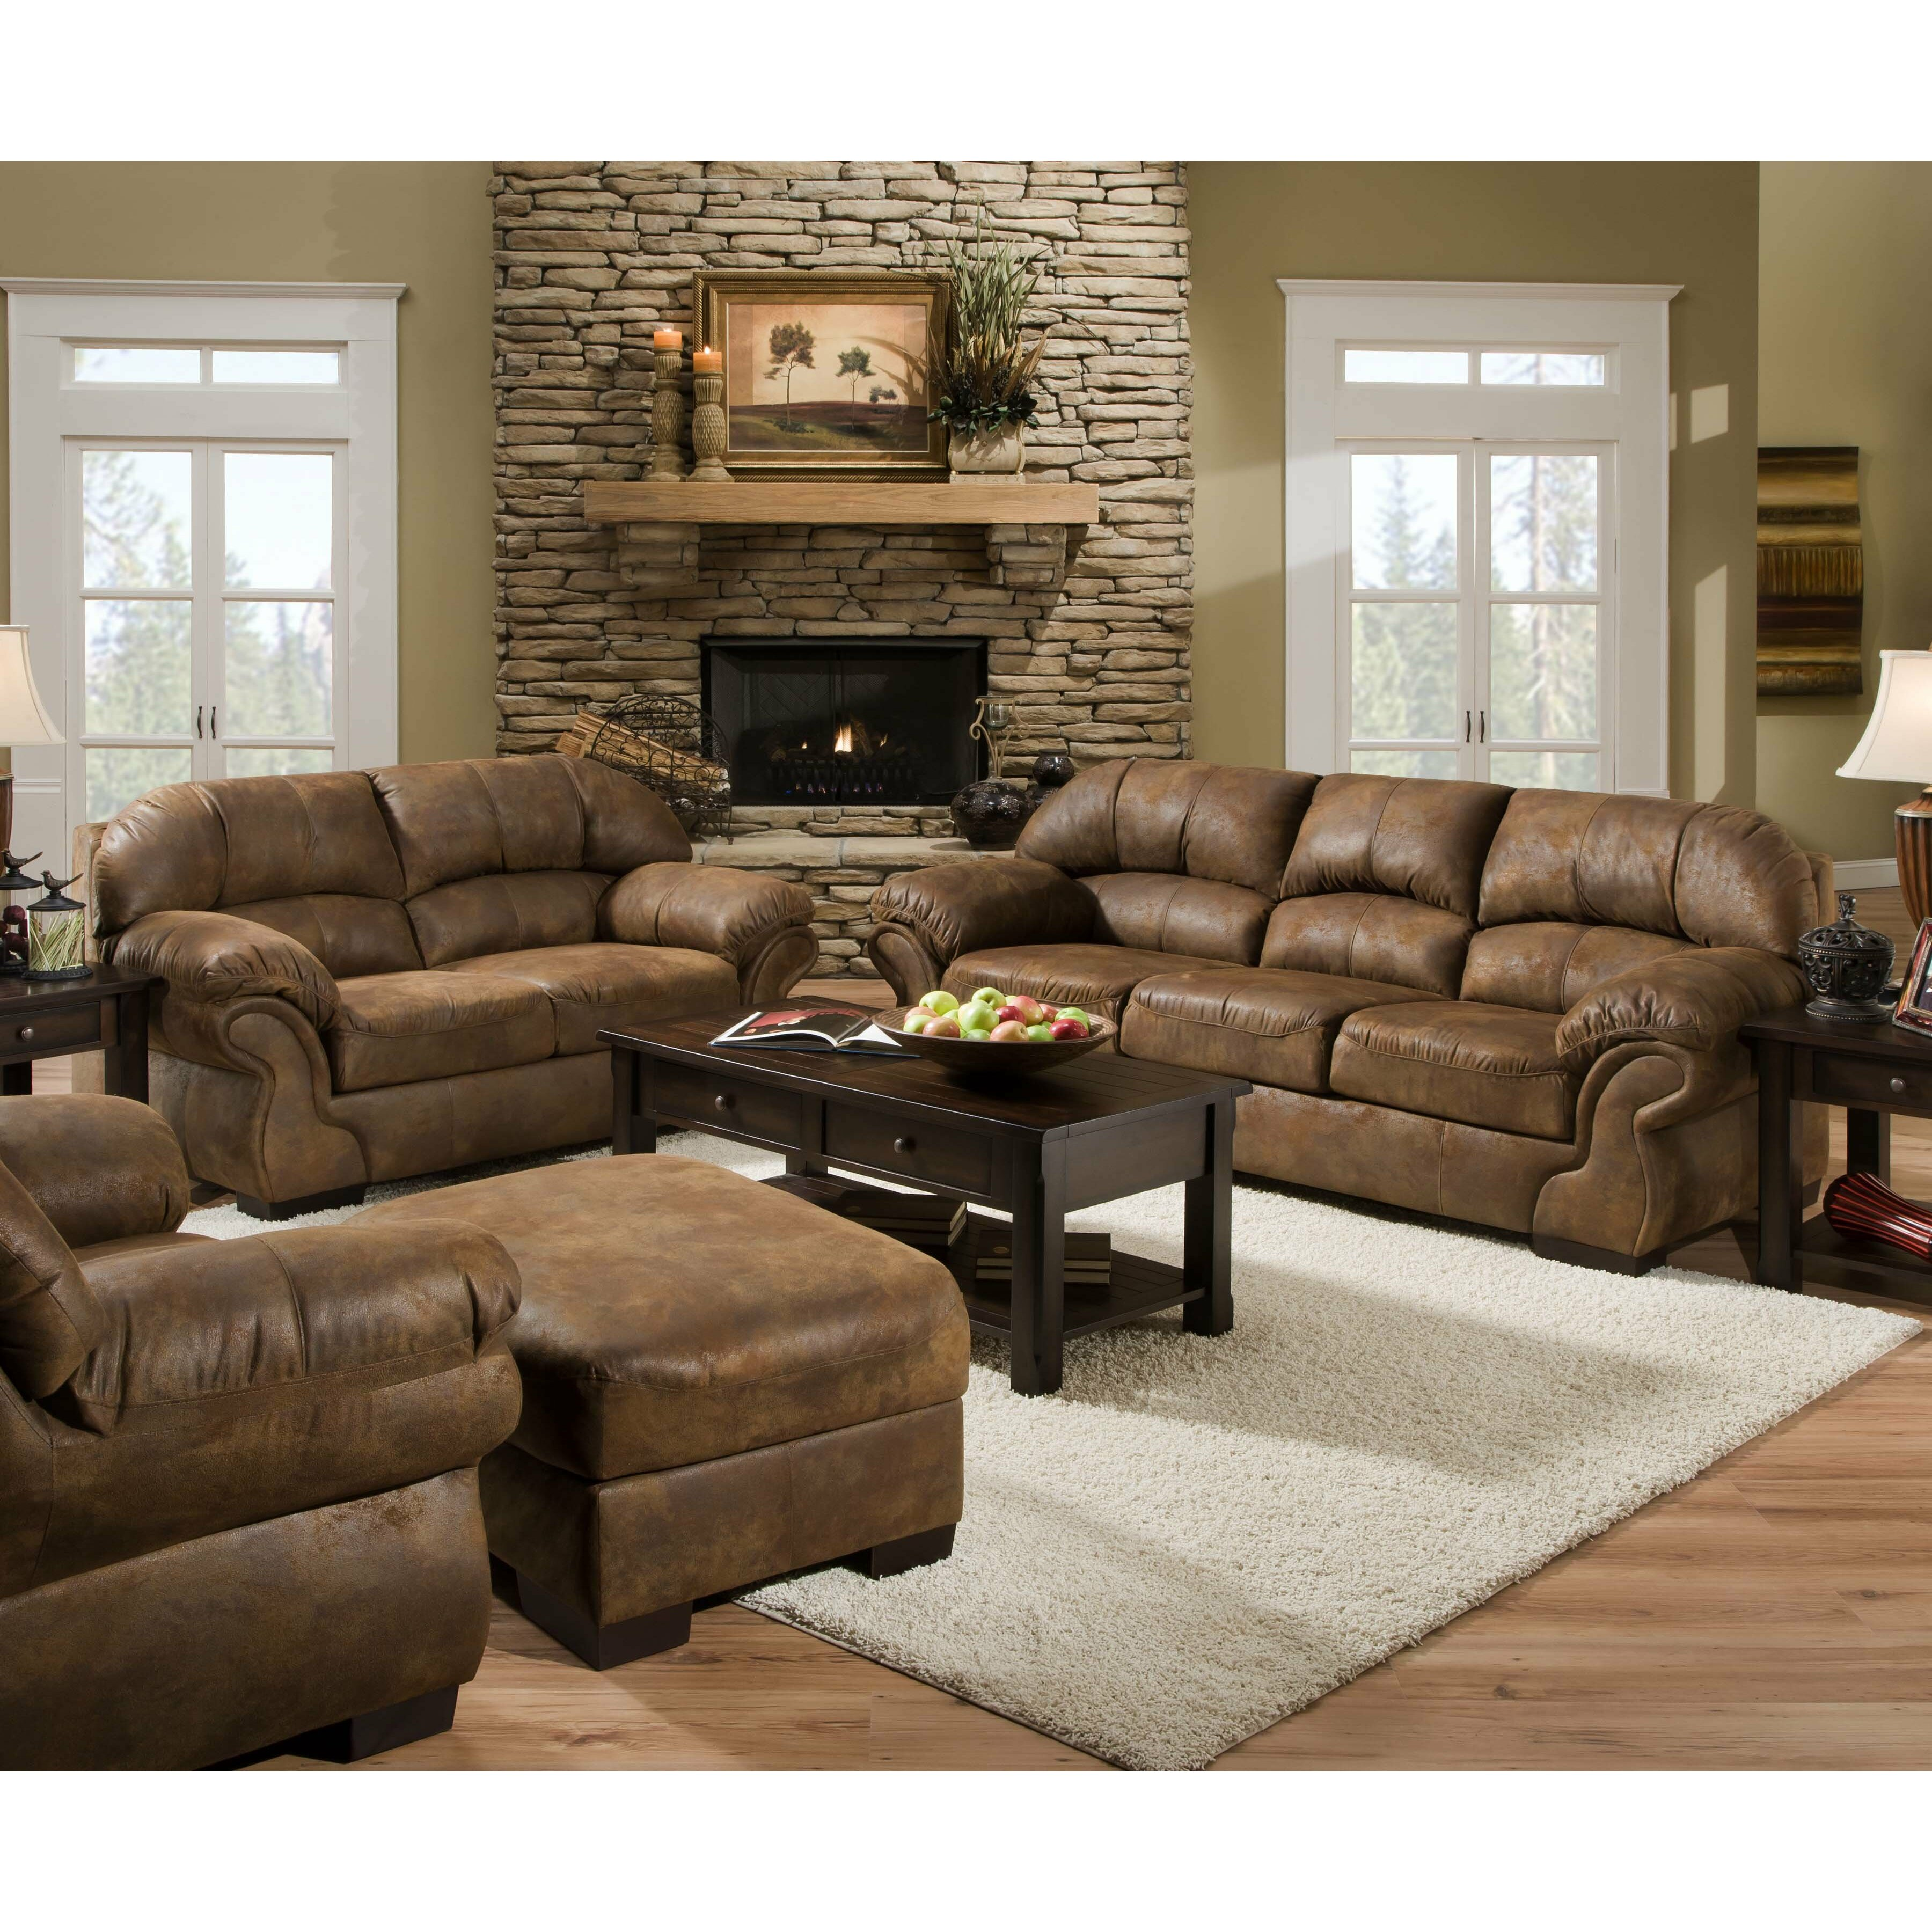 Simmons Living Room Set sofa set in brass 8003slc traditional